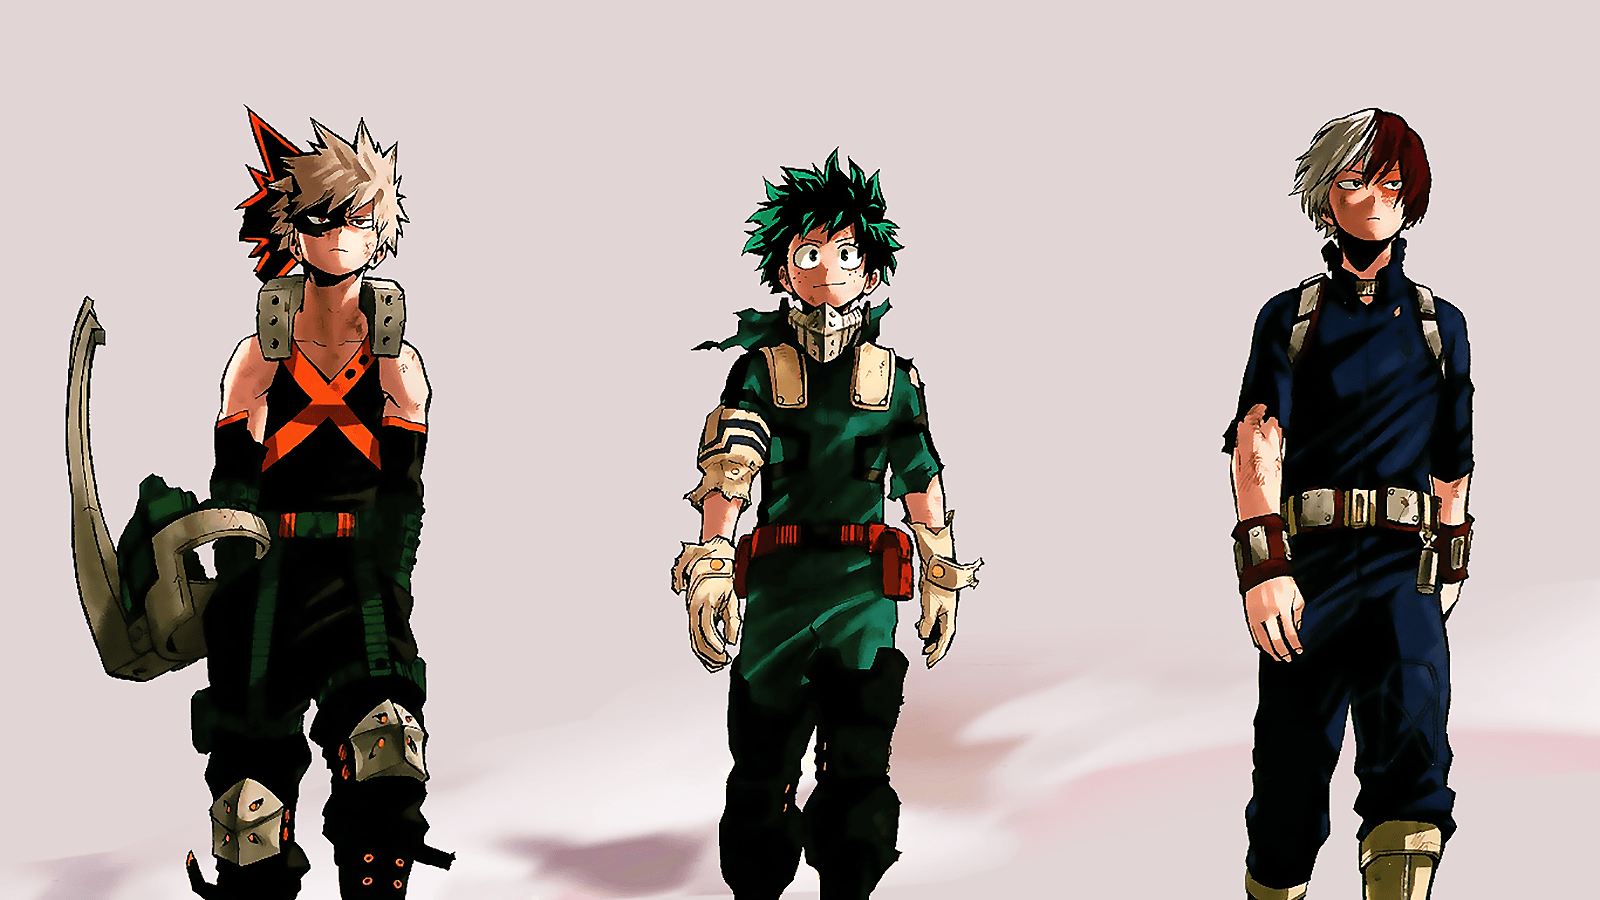 1600x900 1246 My Hero Academia HD Wallpapers | Background Images - Wallpaper ...